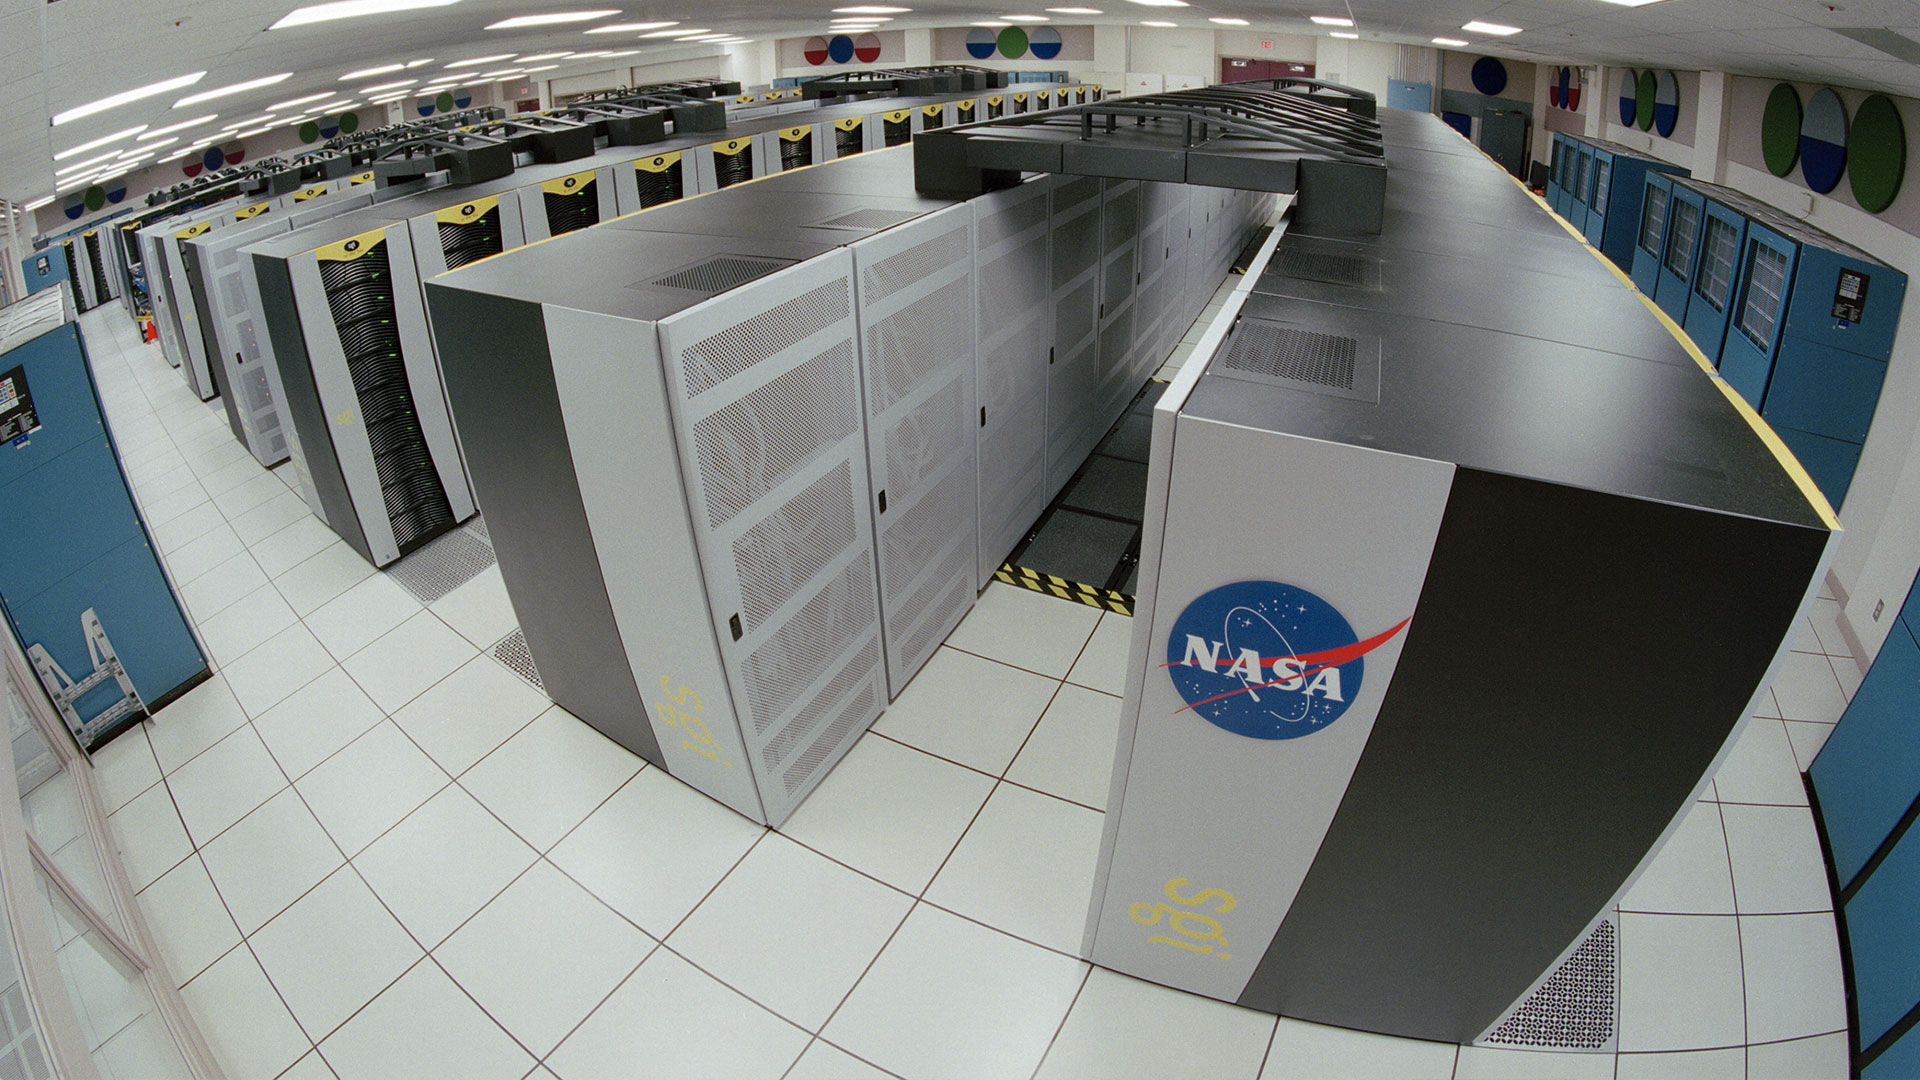 20150616_LS_079_Supercomputer_clean.jpg